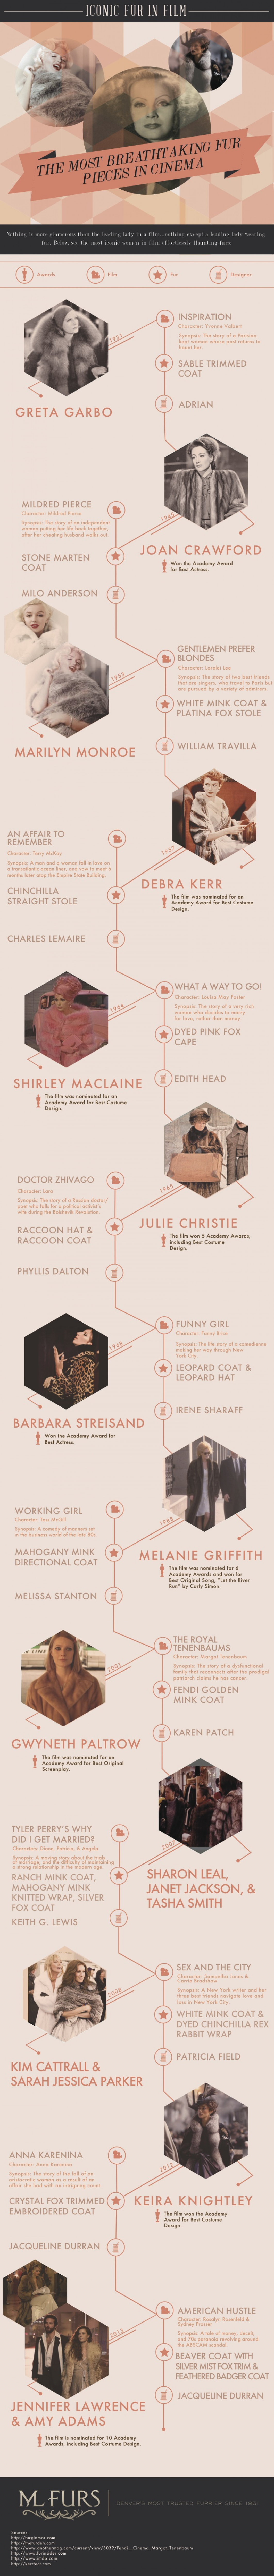 Iconic Furs In Film Infographic